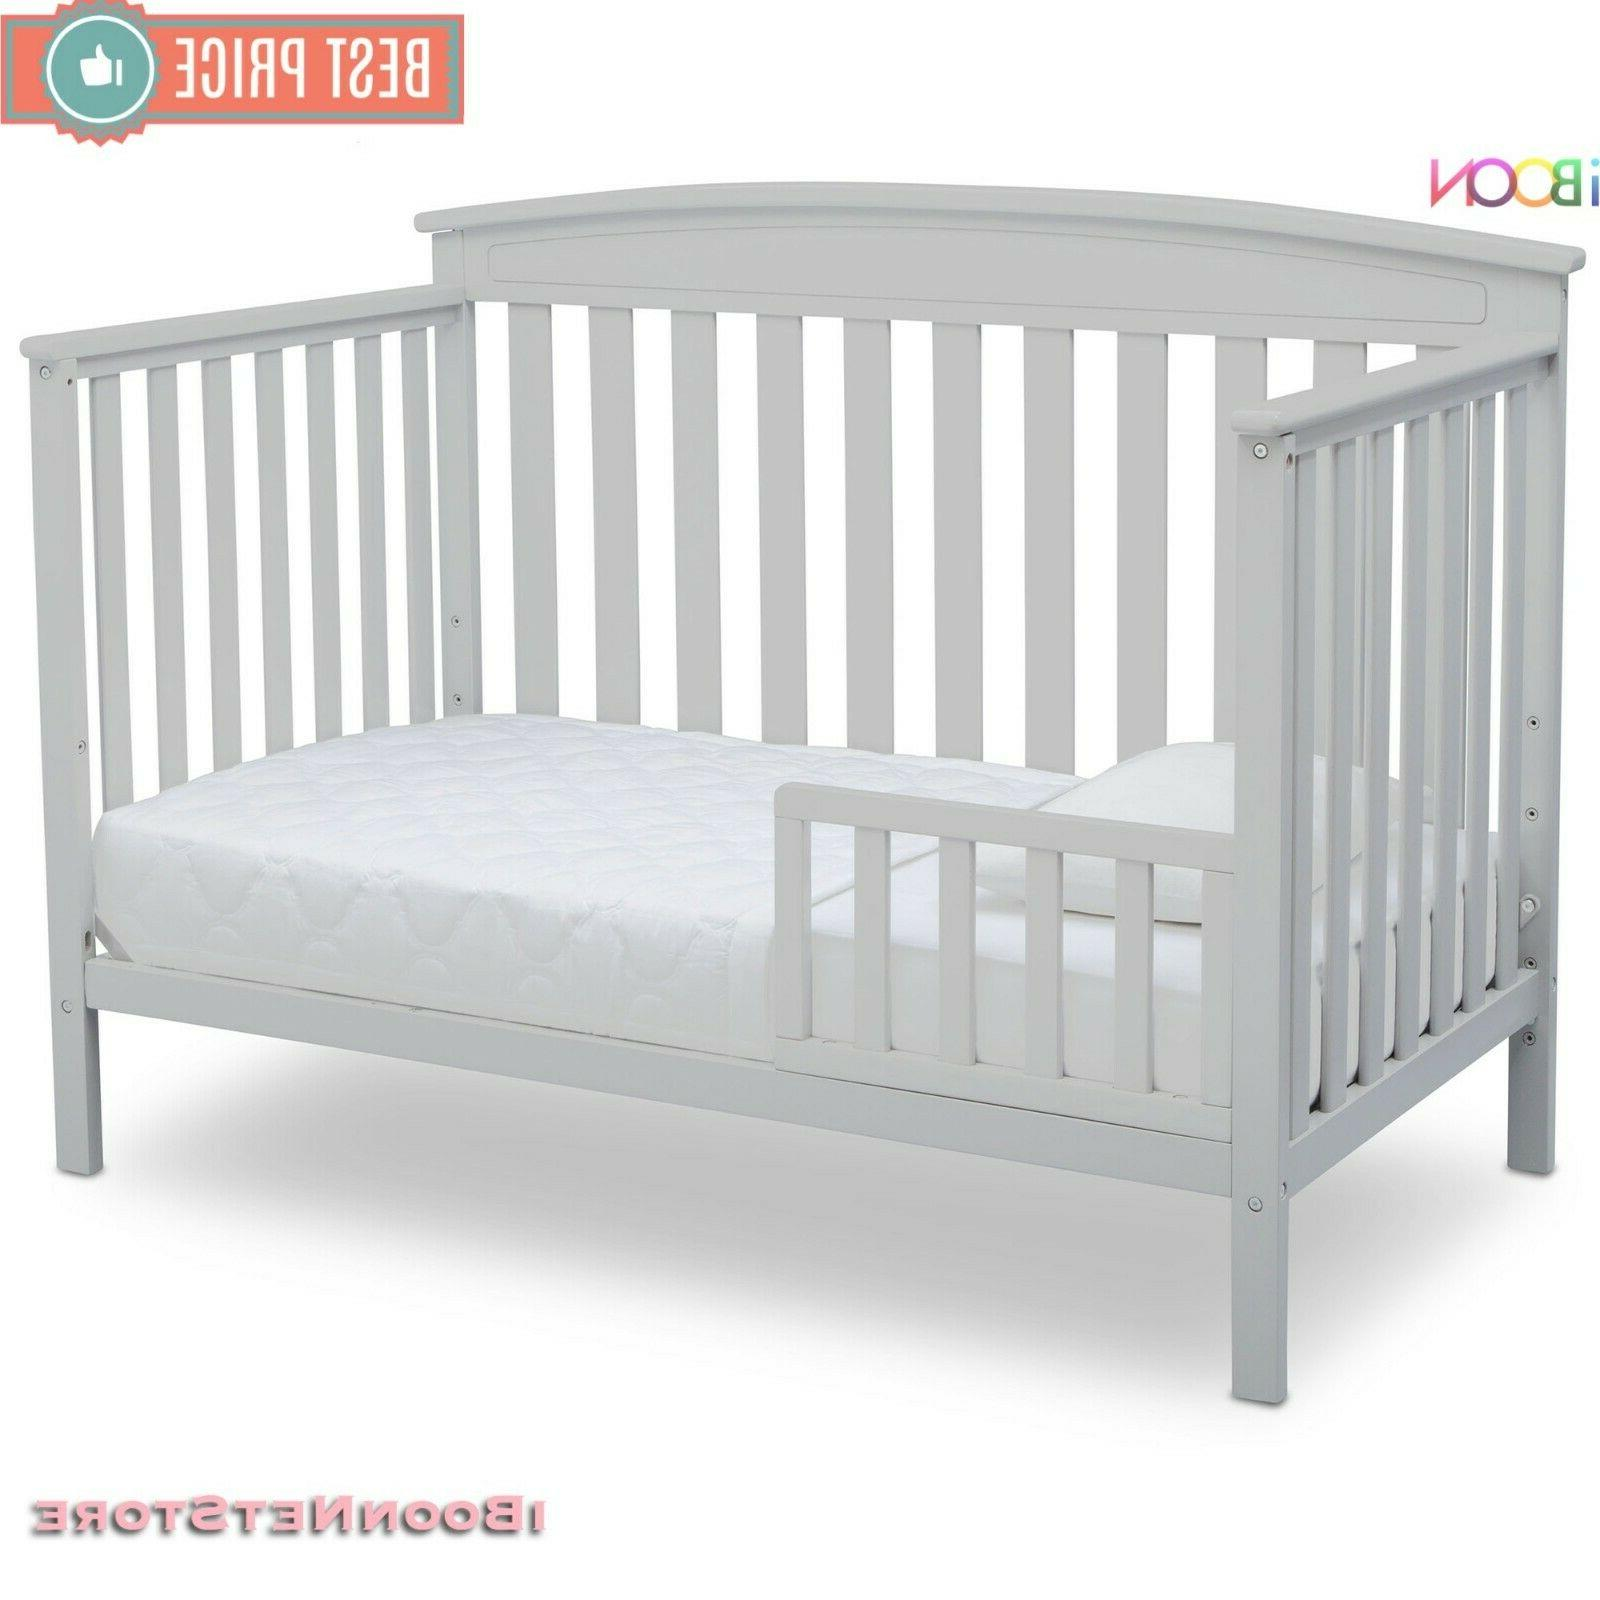 Adjustable Baby Crib in 1 Sold Wood to BED